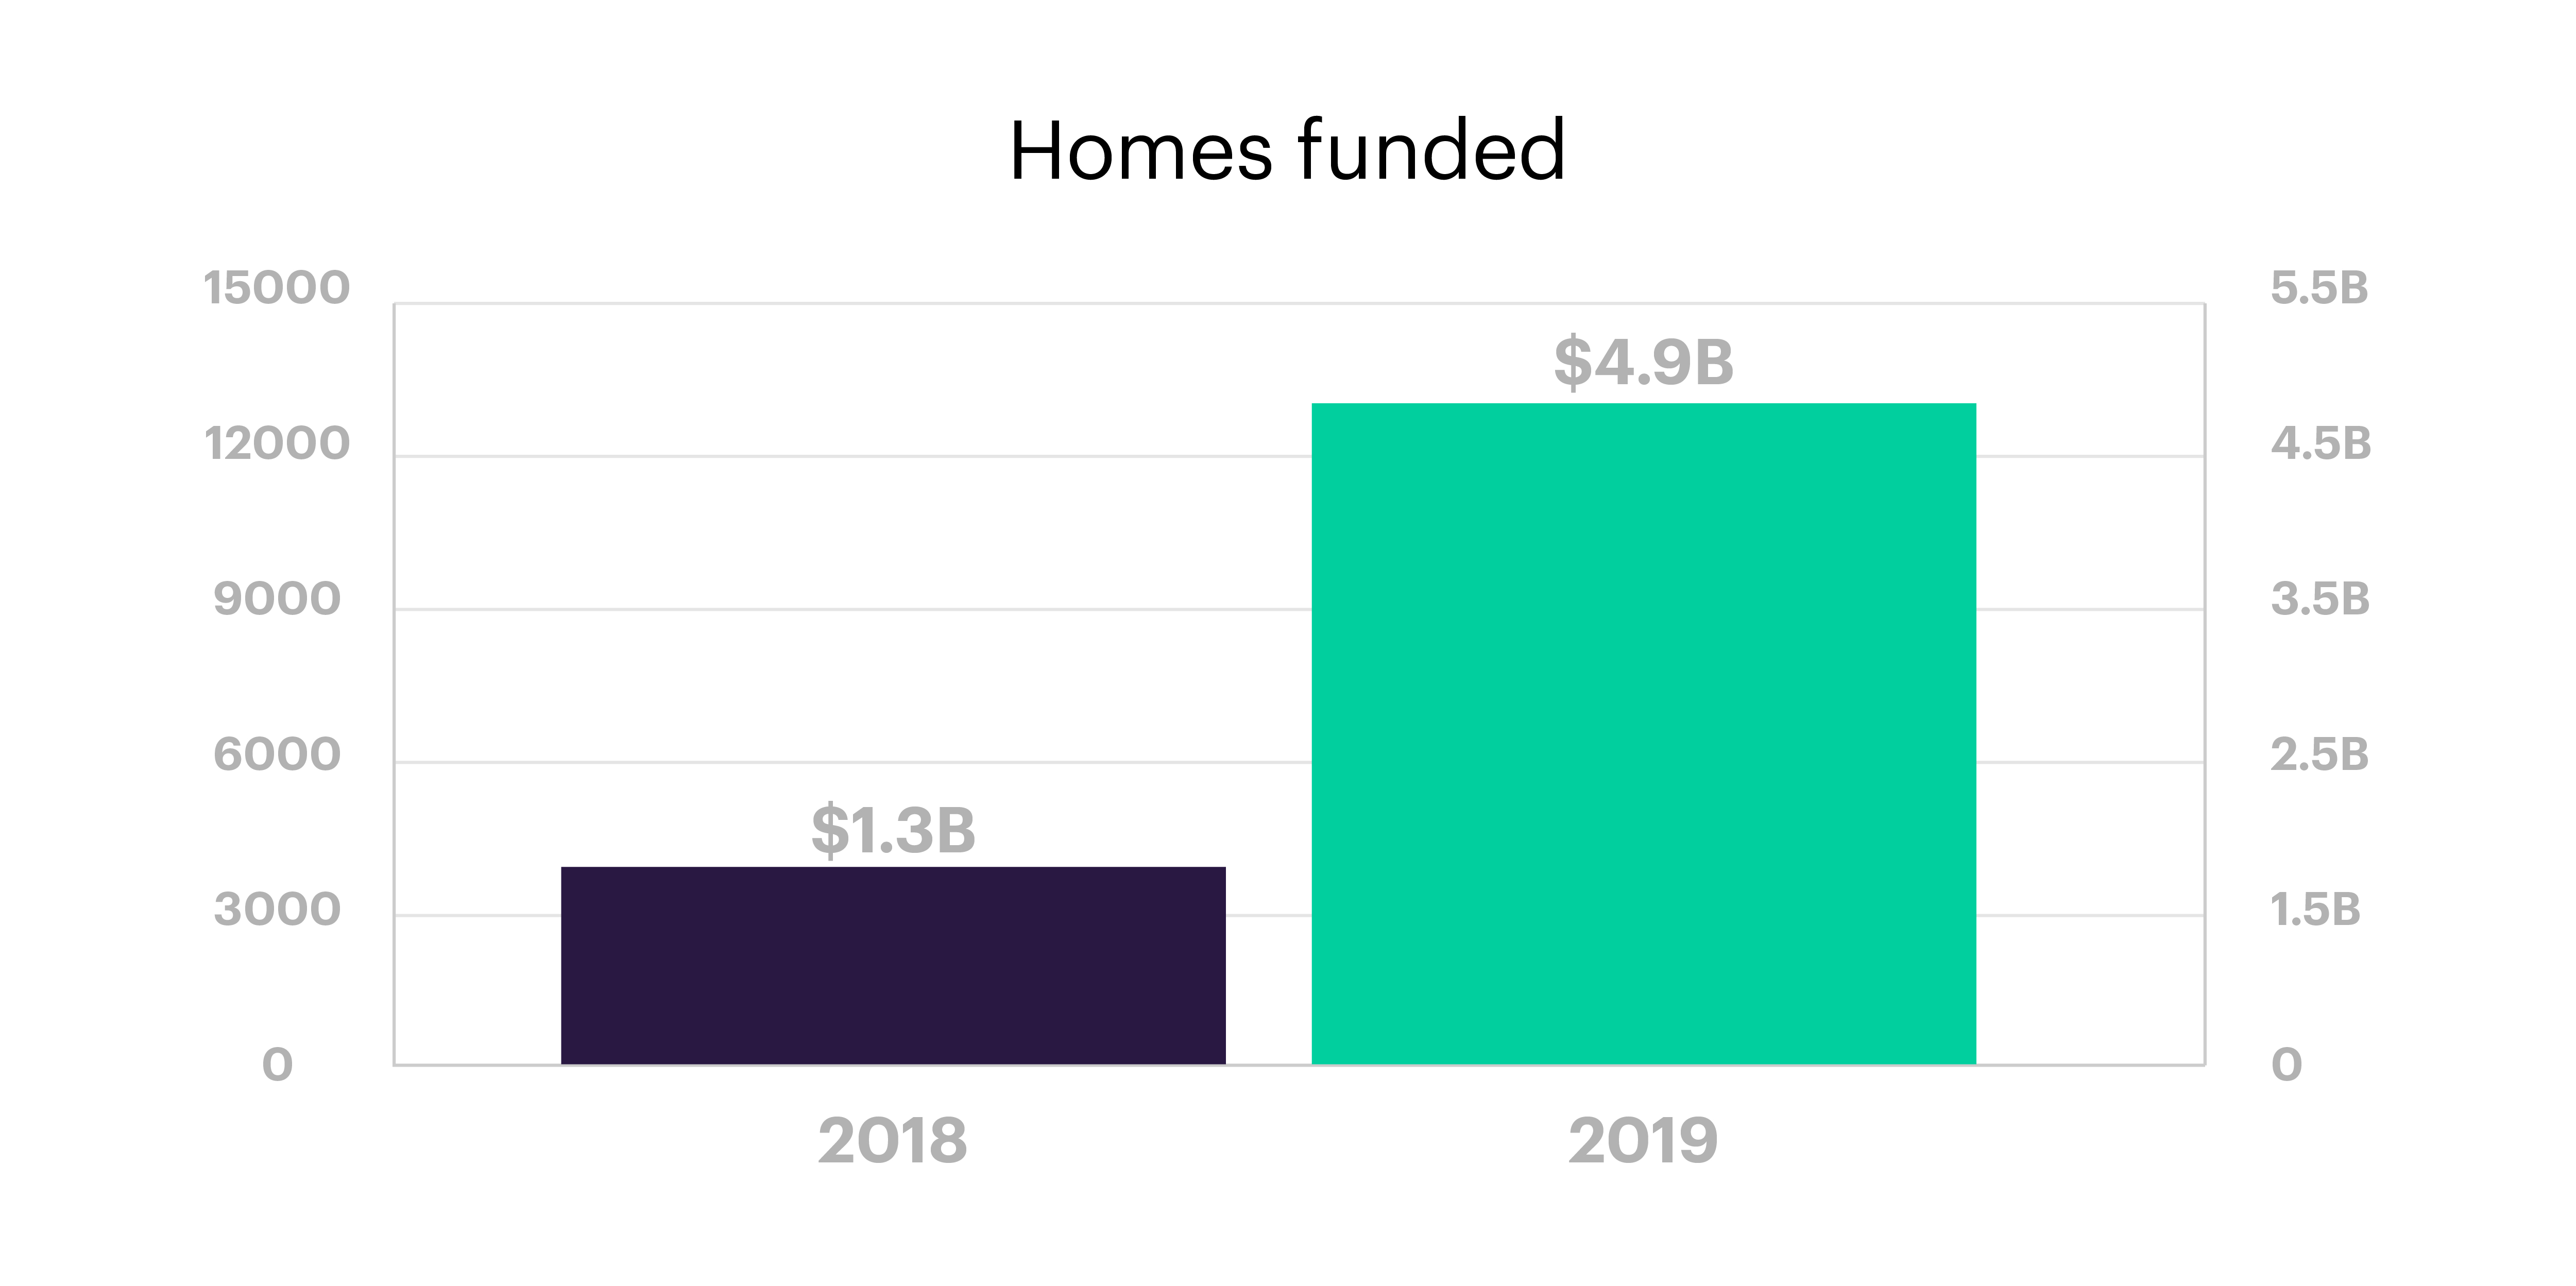 homes funded